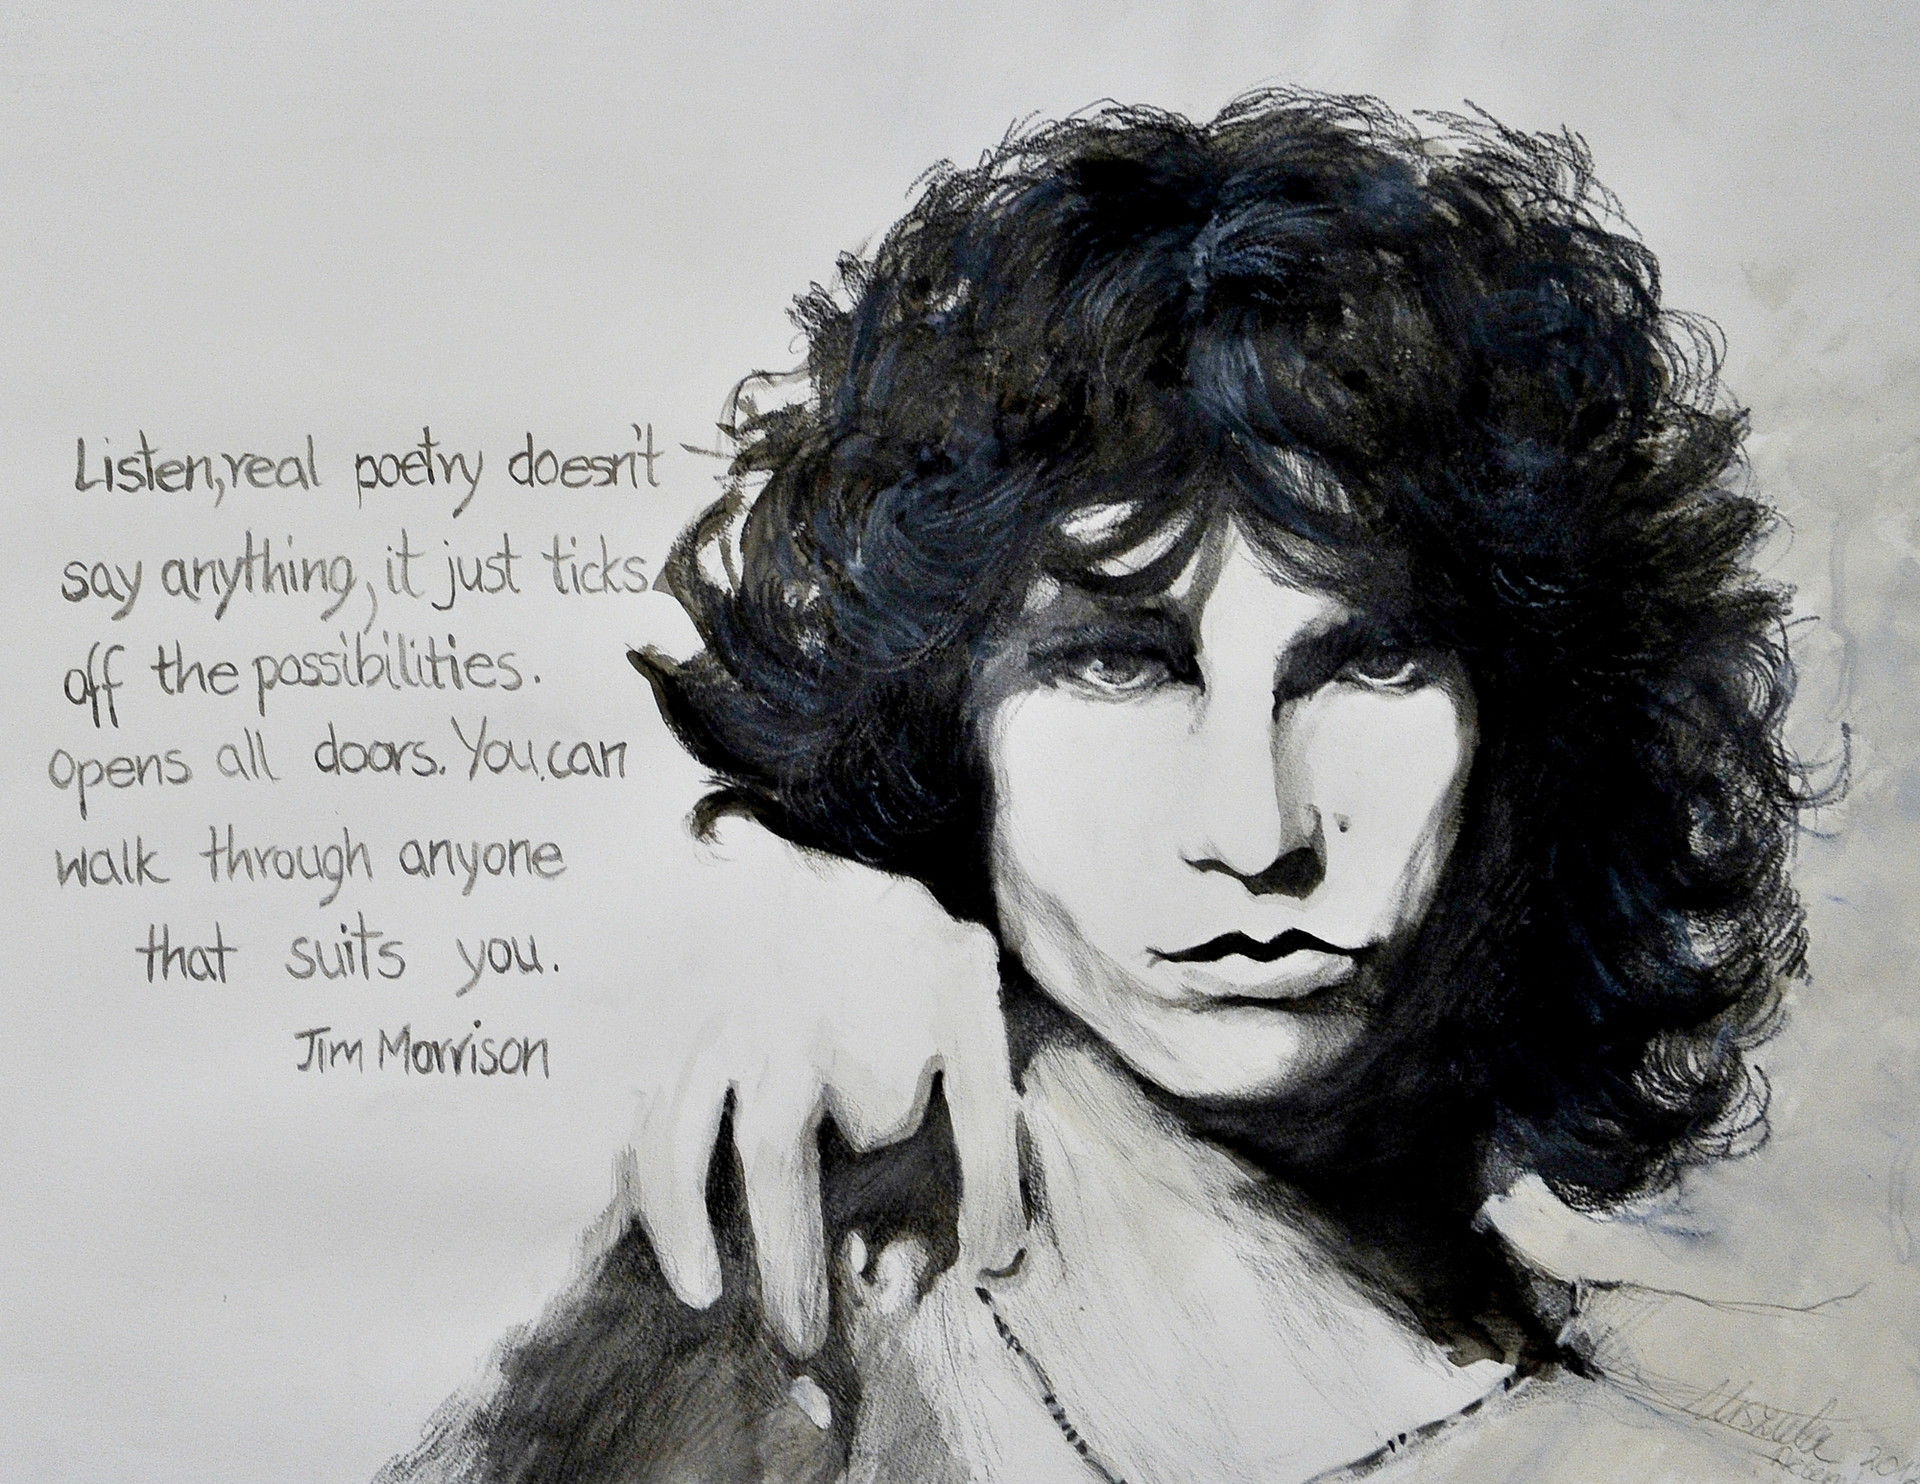 Jim Morrison withe Quote